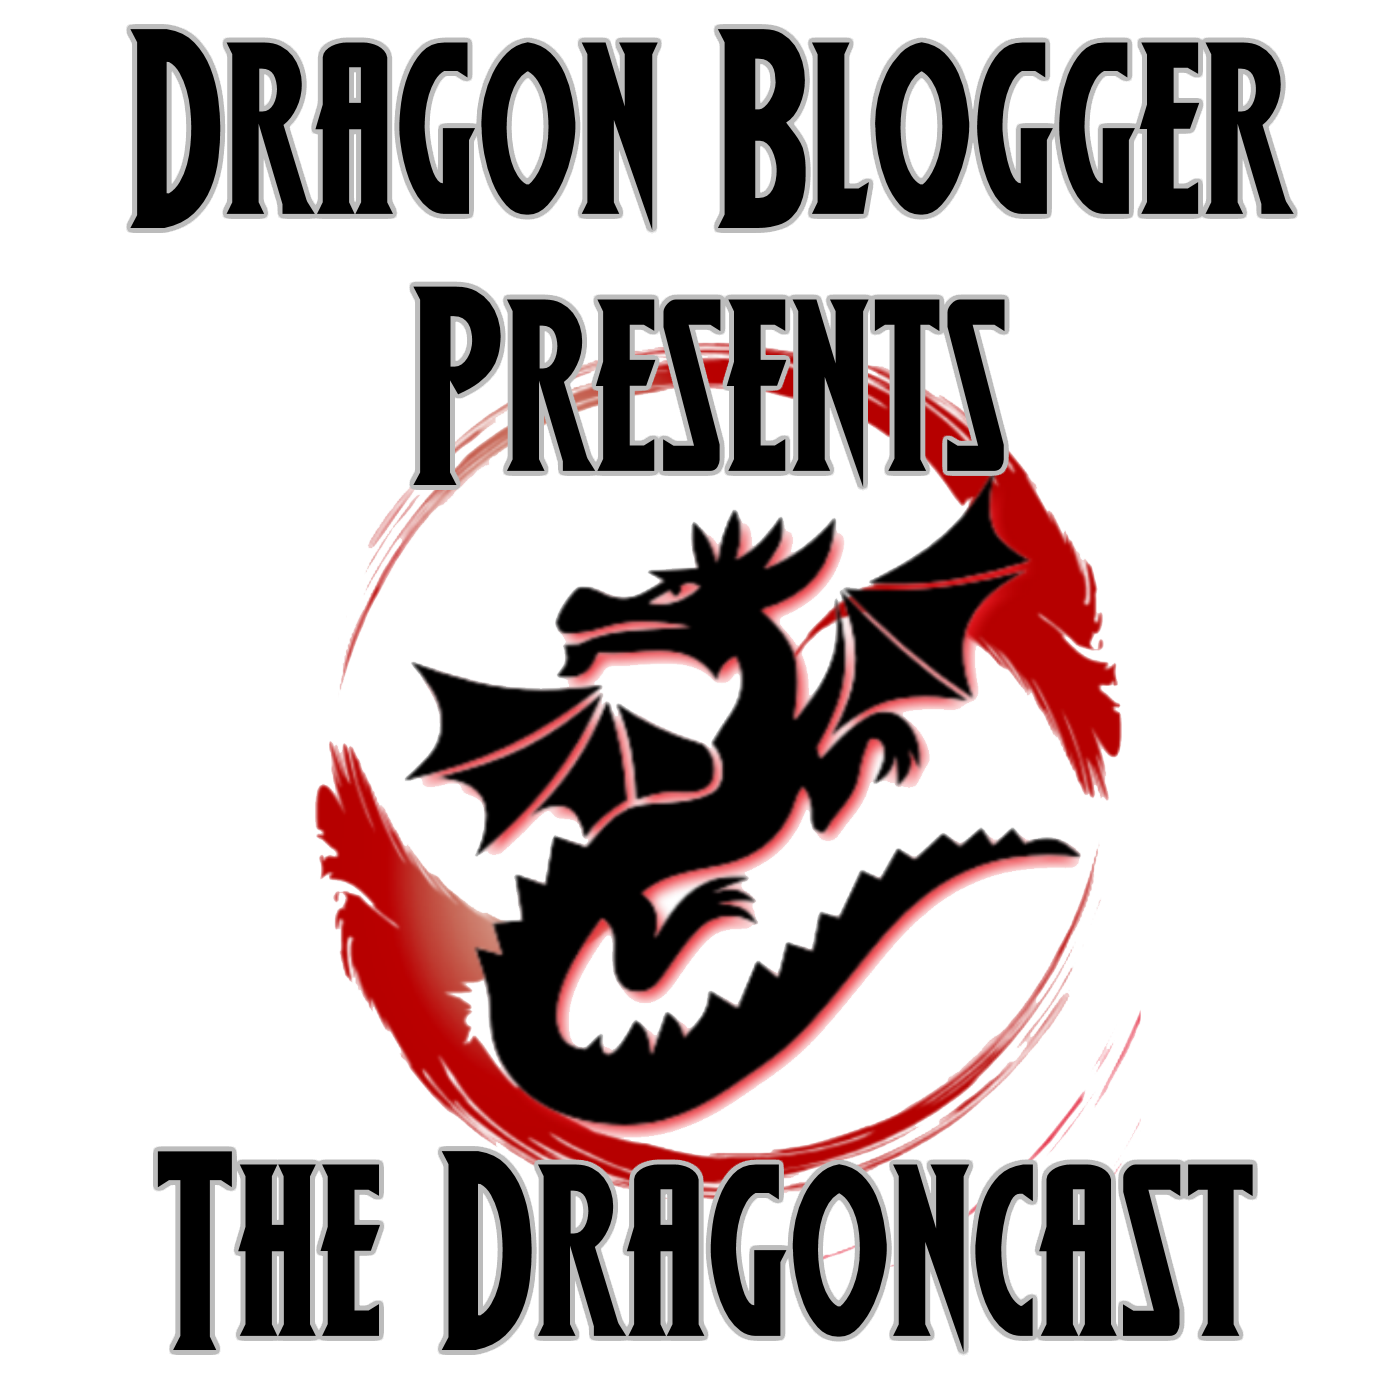 Dragon Blogger Presents: The Dragoncast